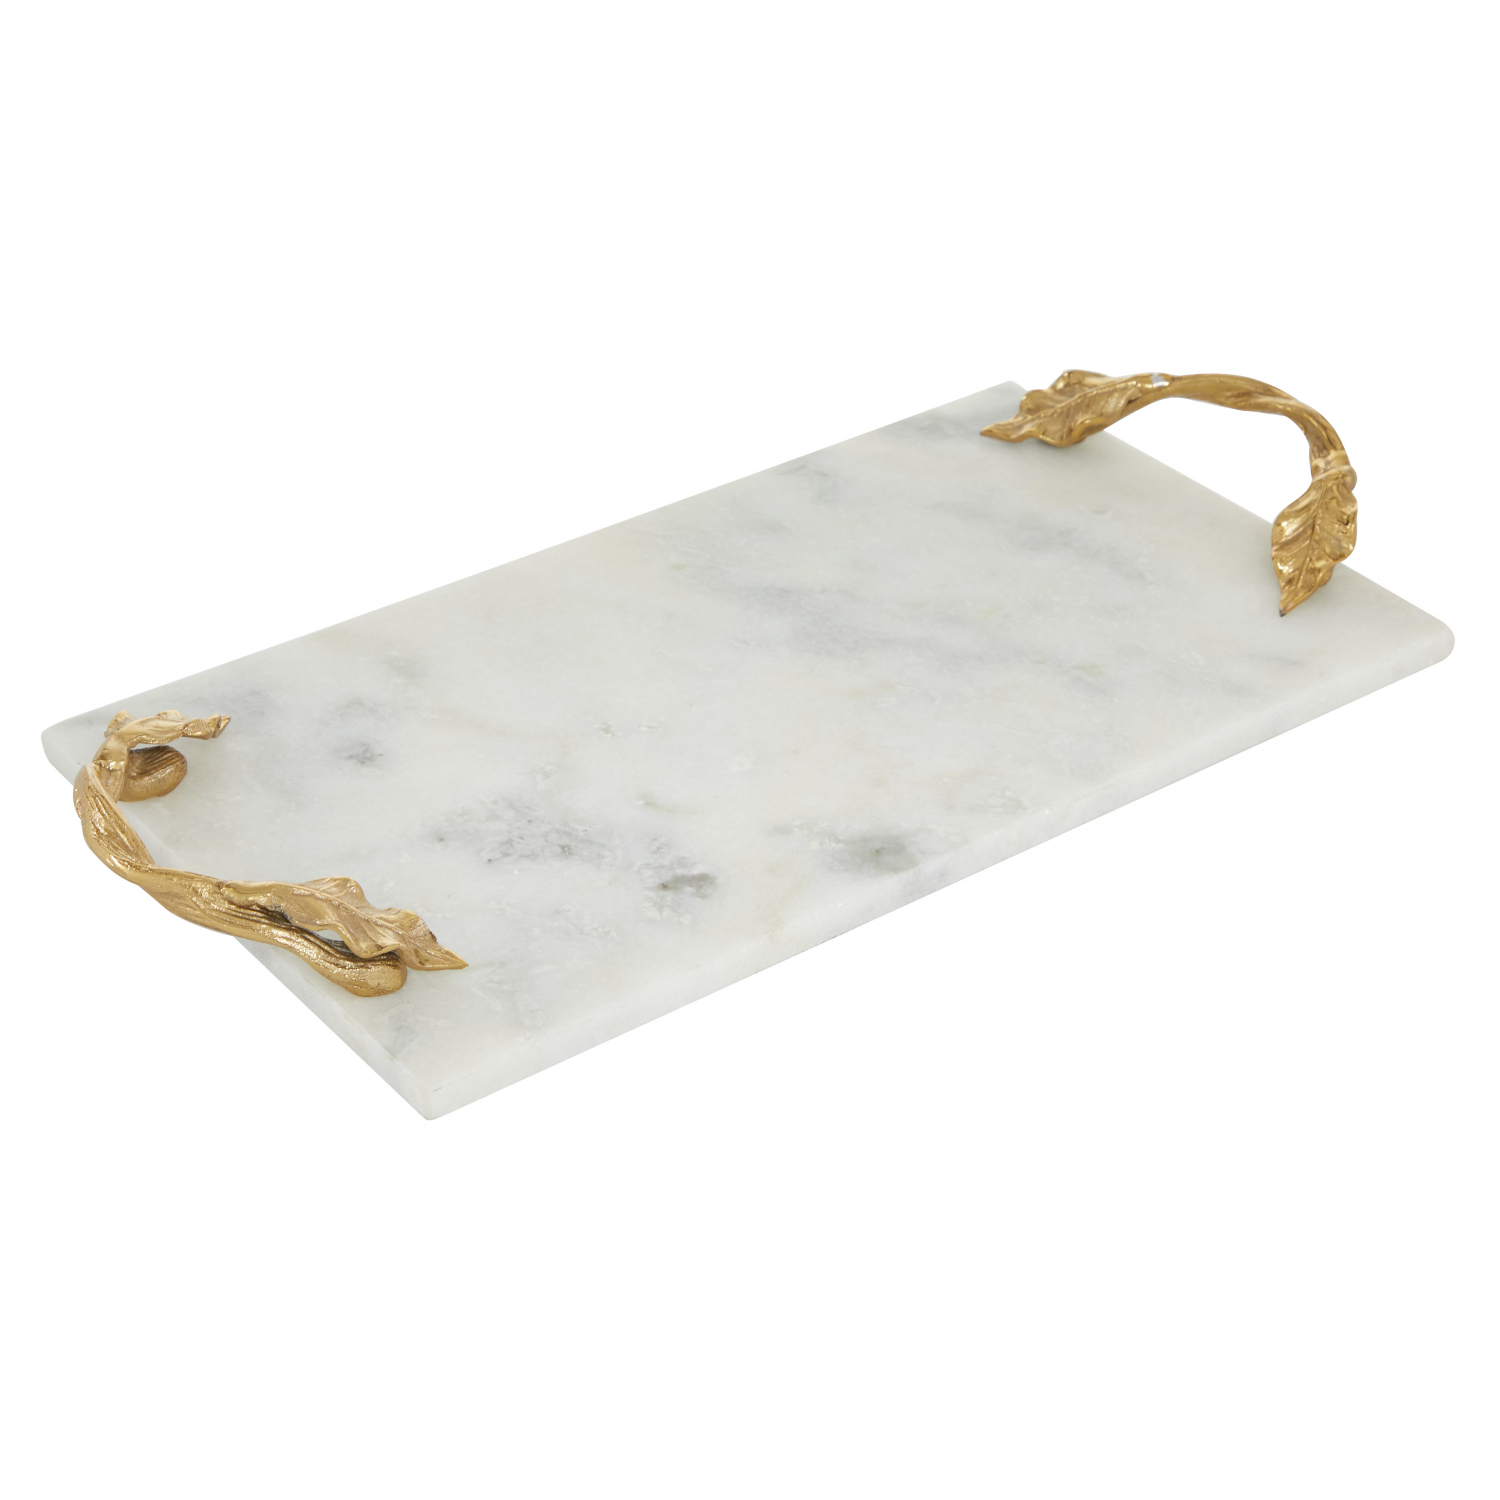 Large Rectangular White Marble Serving Tray Decorative Gold Leaf Metal Handles Ebay